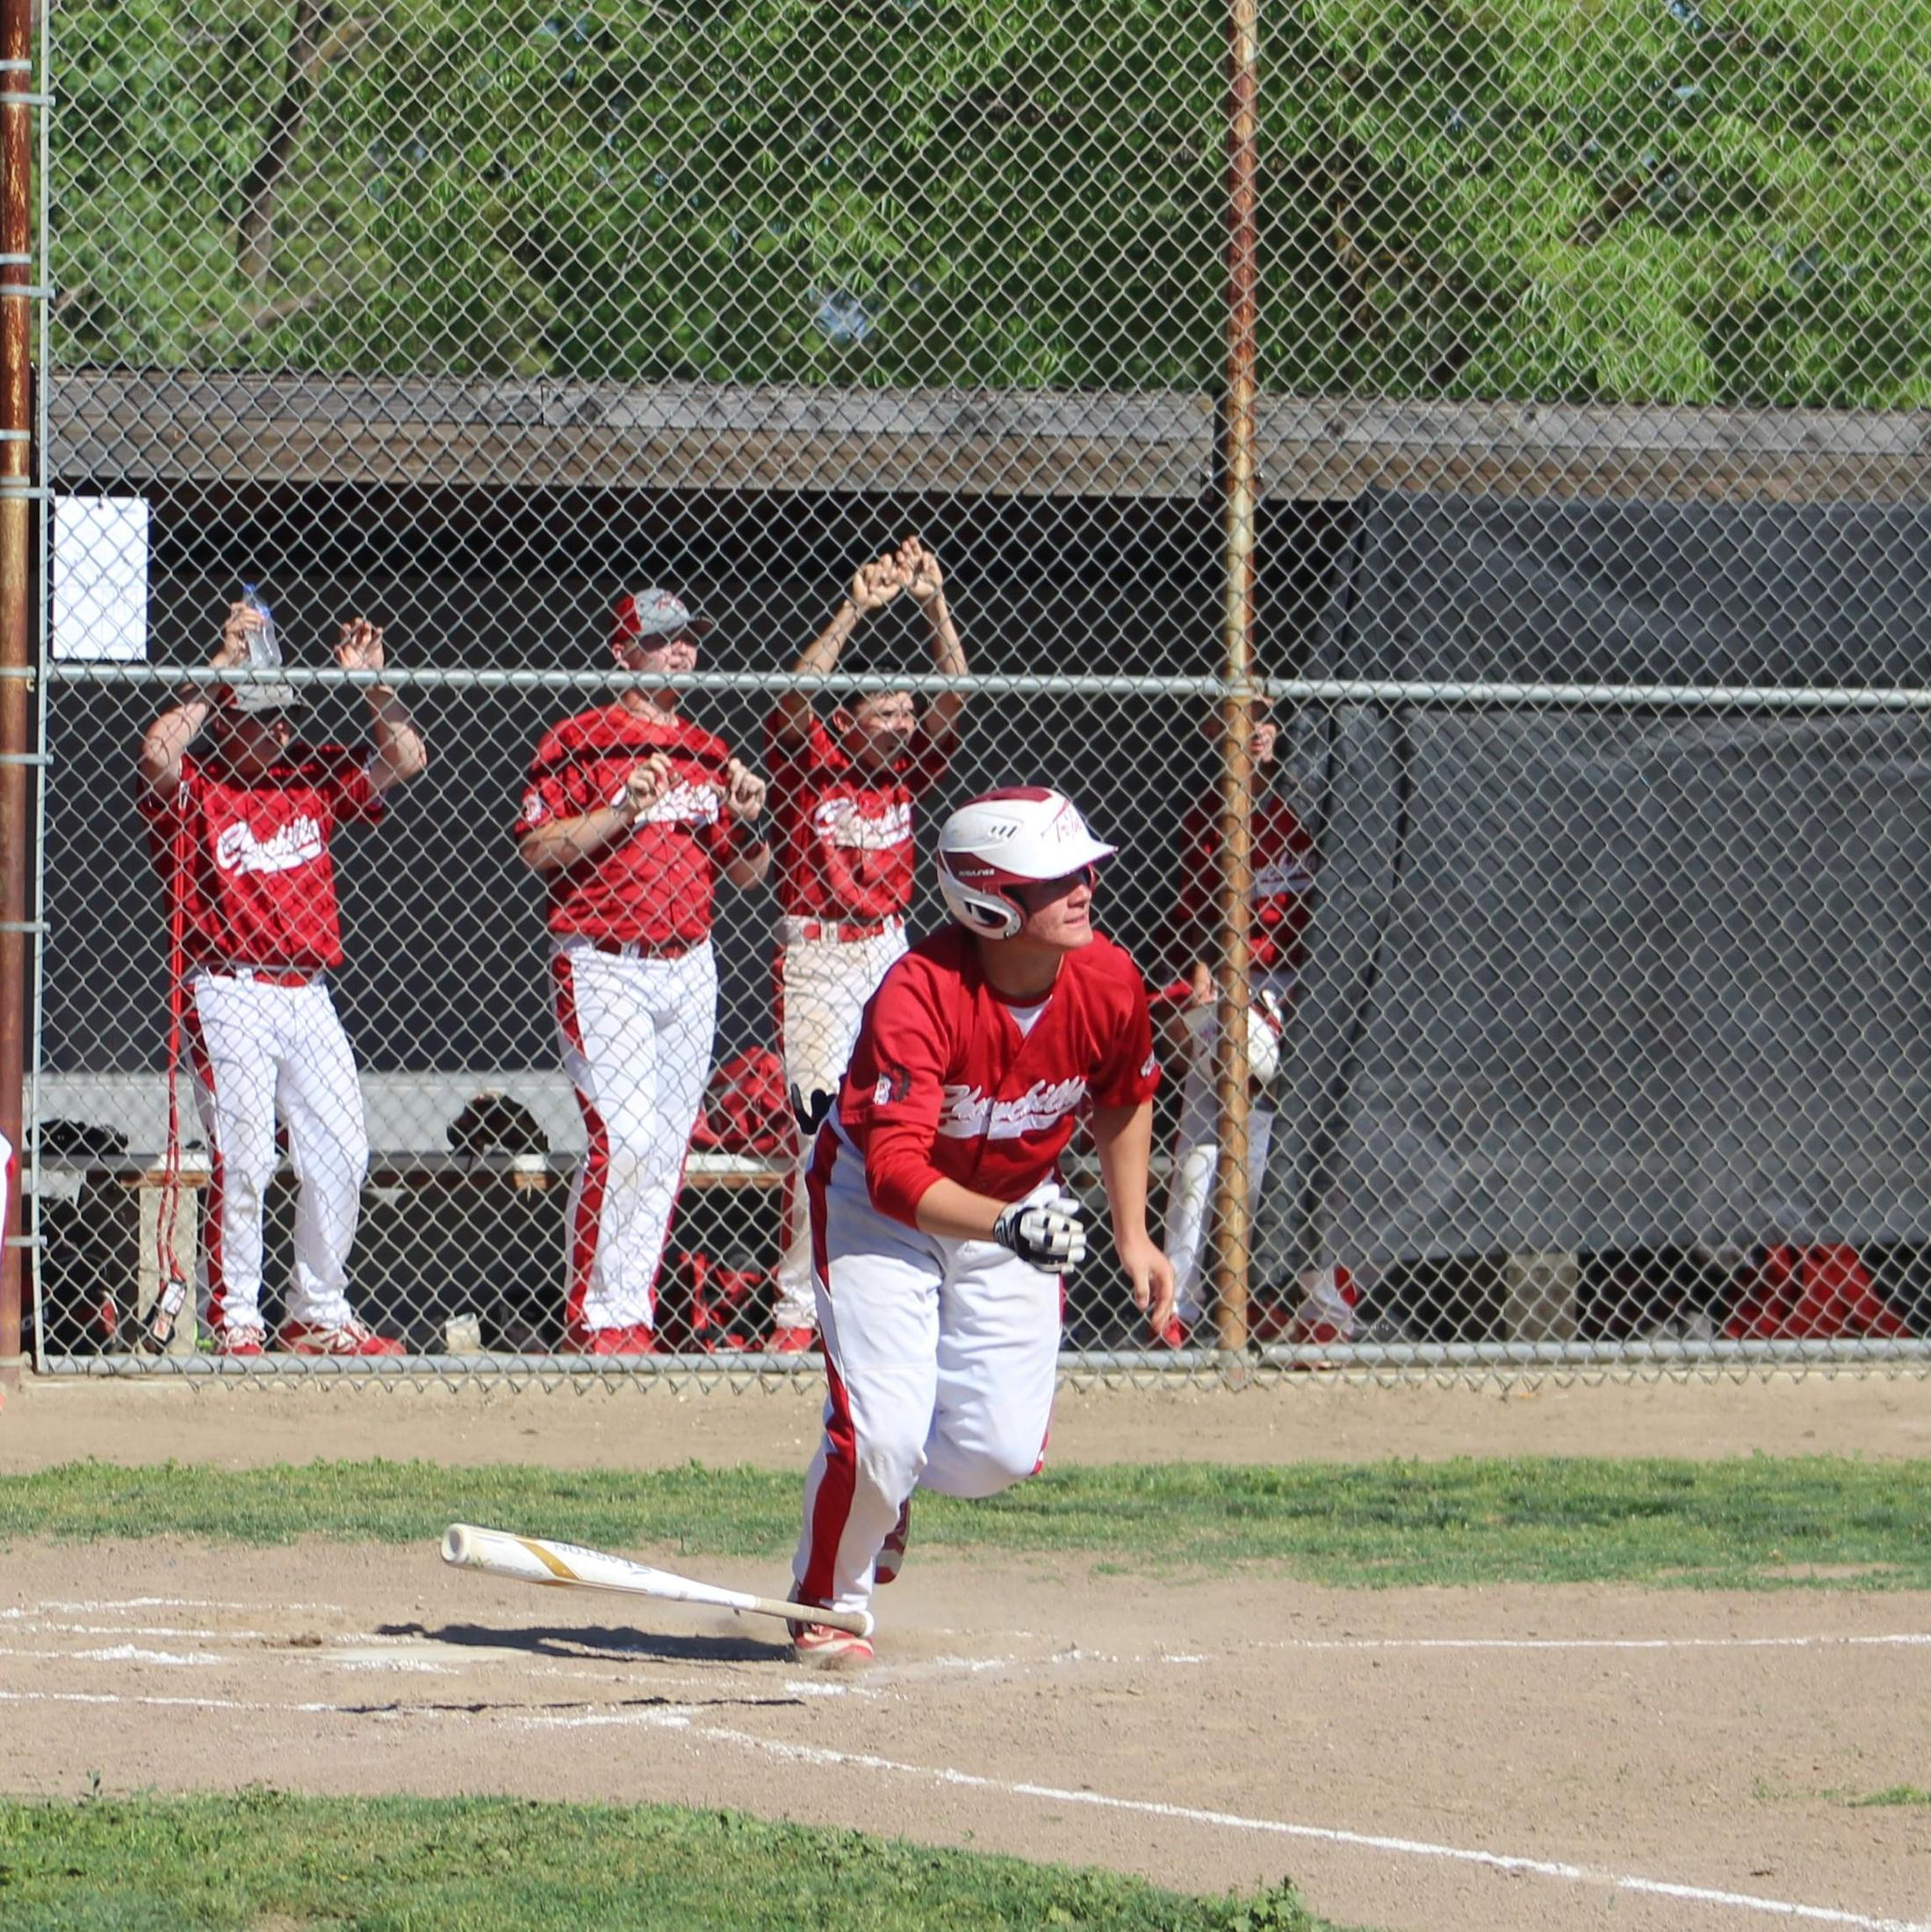 JV baseball players in action against Washington Union